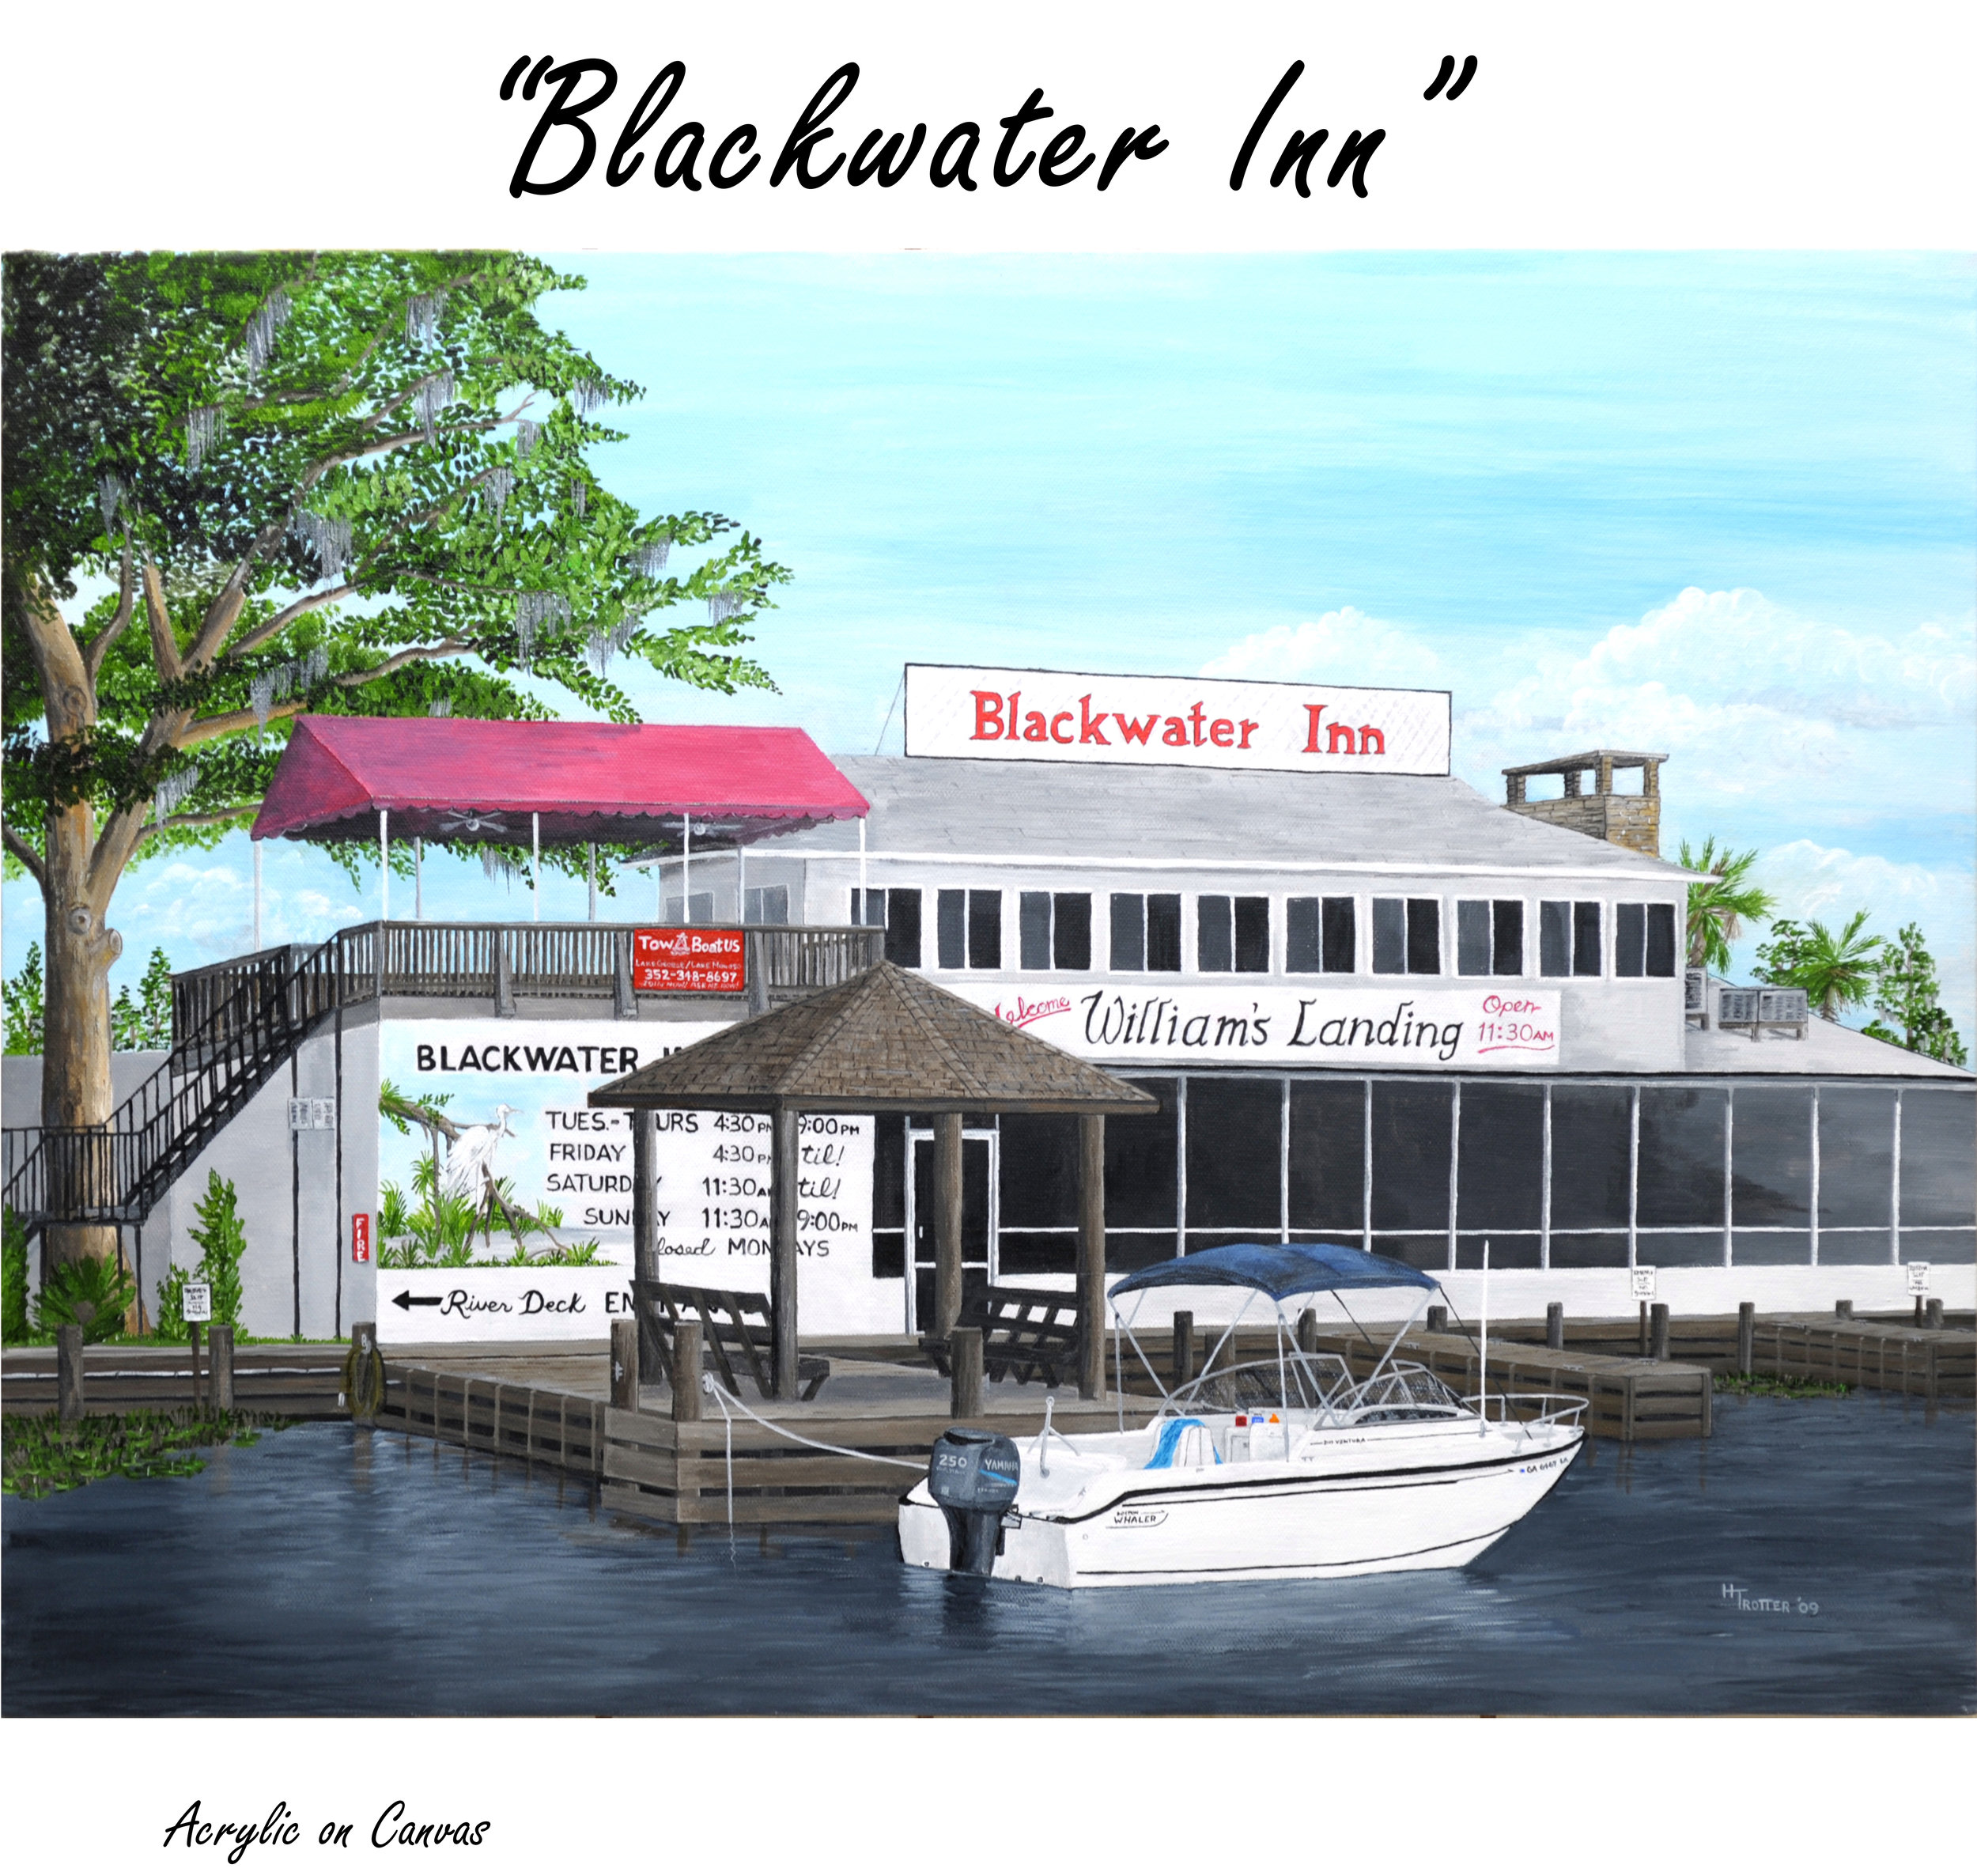 Blackwater Inn.jpg